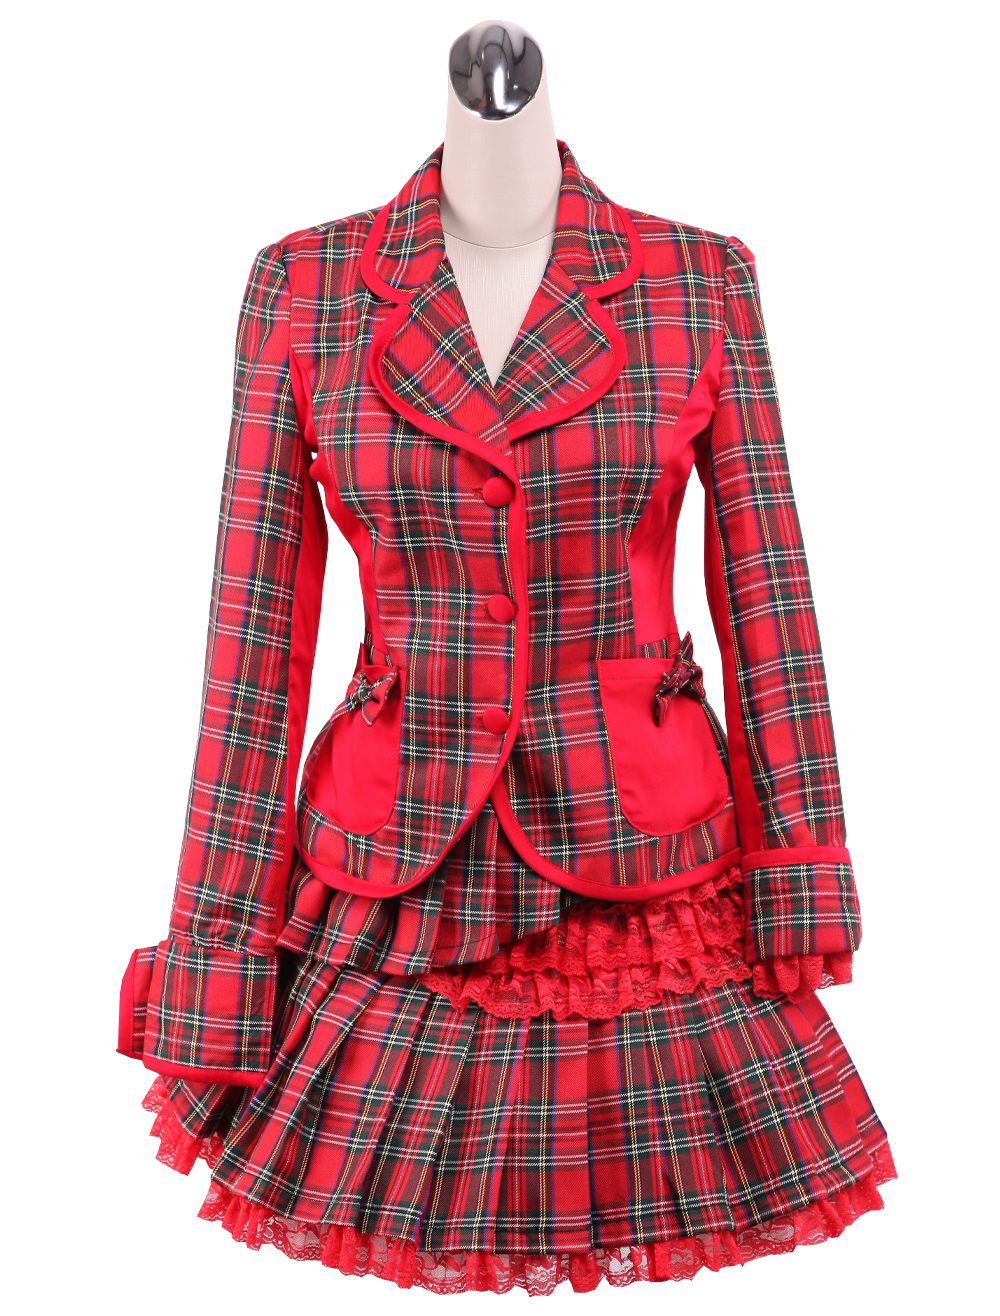 Primary image for ZeroMart Red Gingham Bow Ruffles Sweet School Lolita Top and Skirt